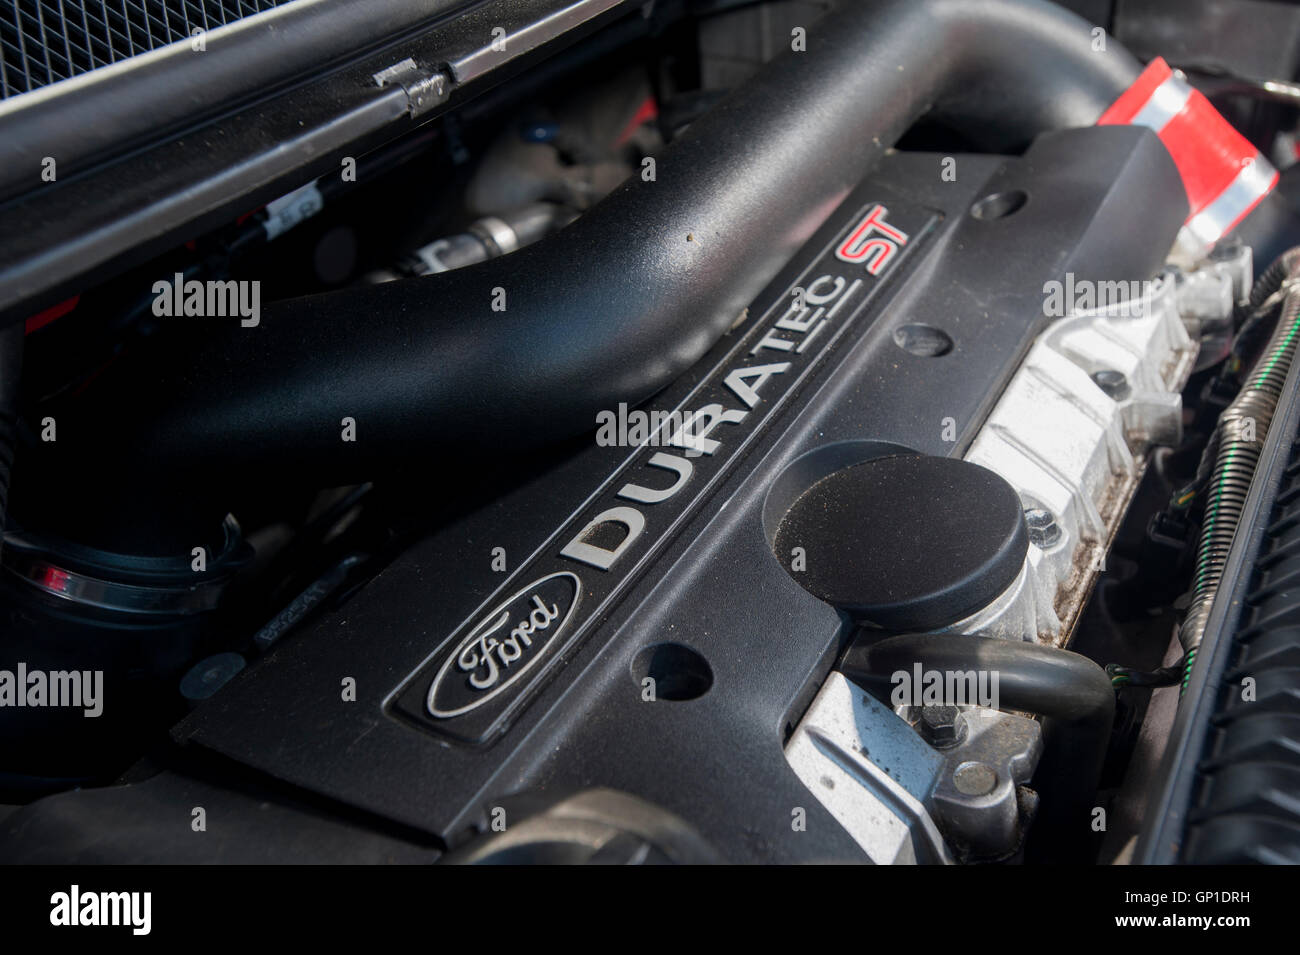 Ford Duratec Engine Stock Photos & Ford Duratec Engine Stock